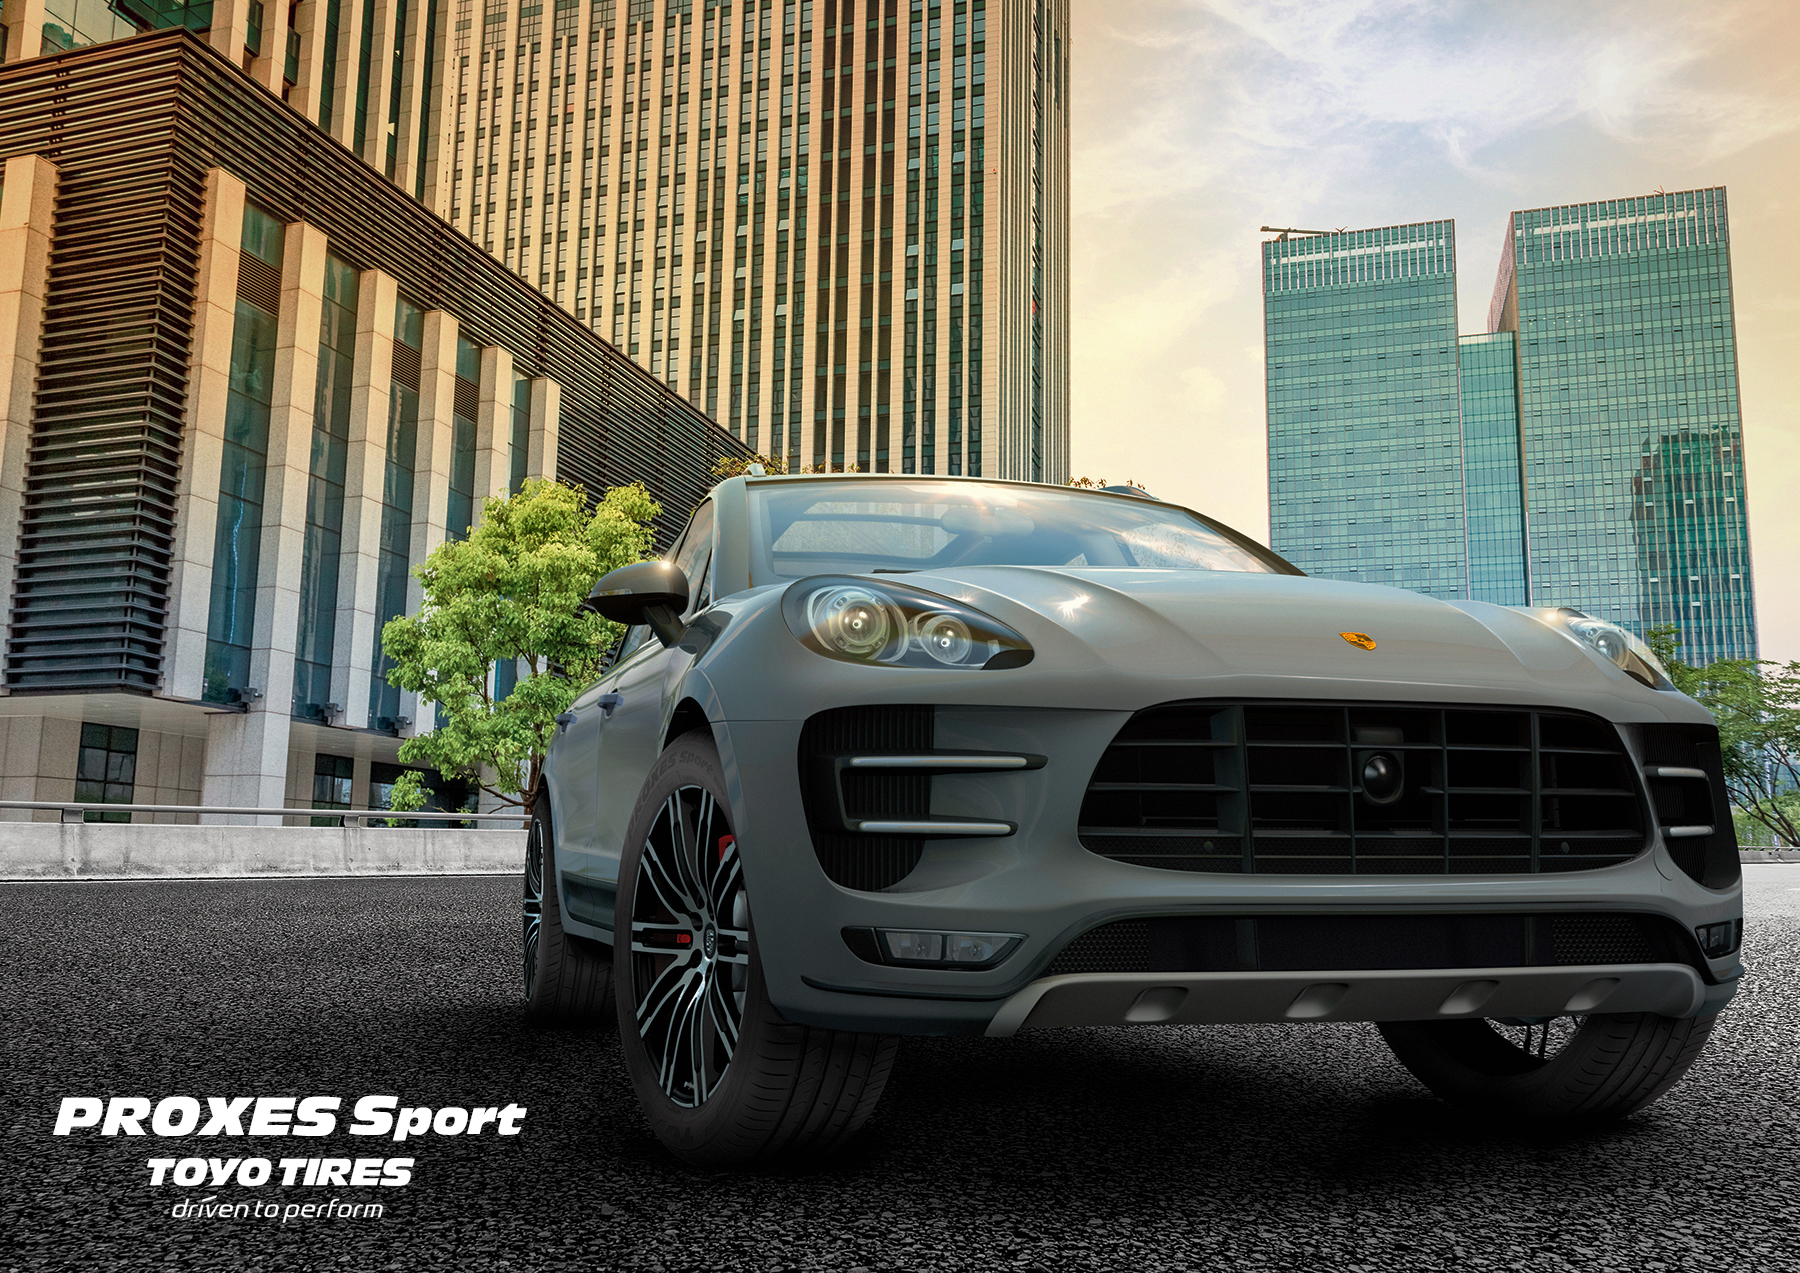 SPORT Proxes SUV FIRE